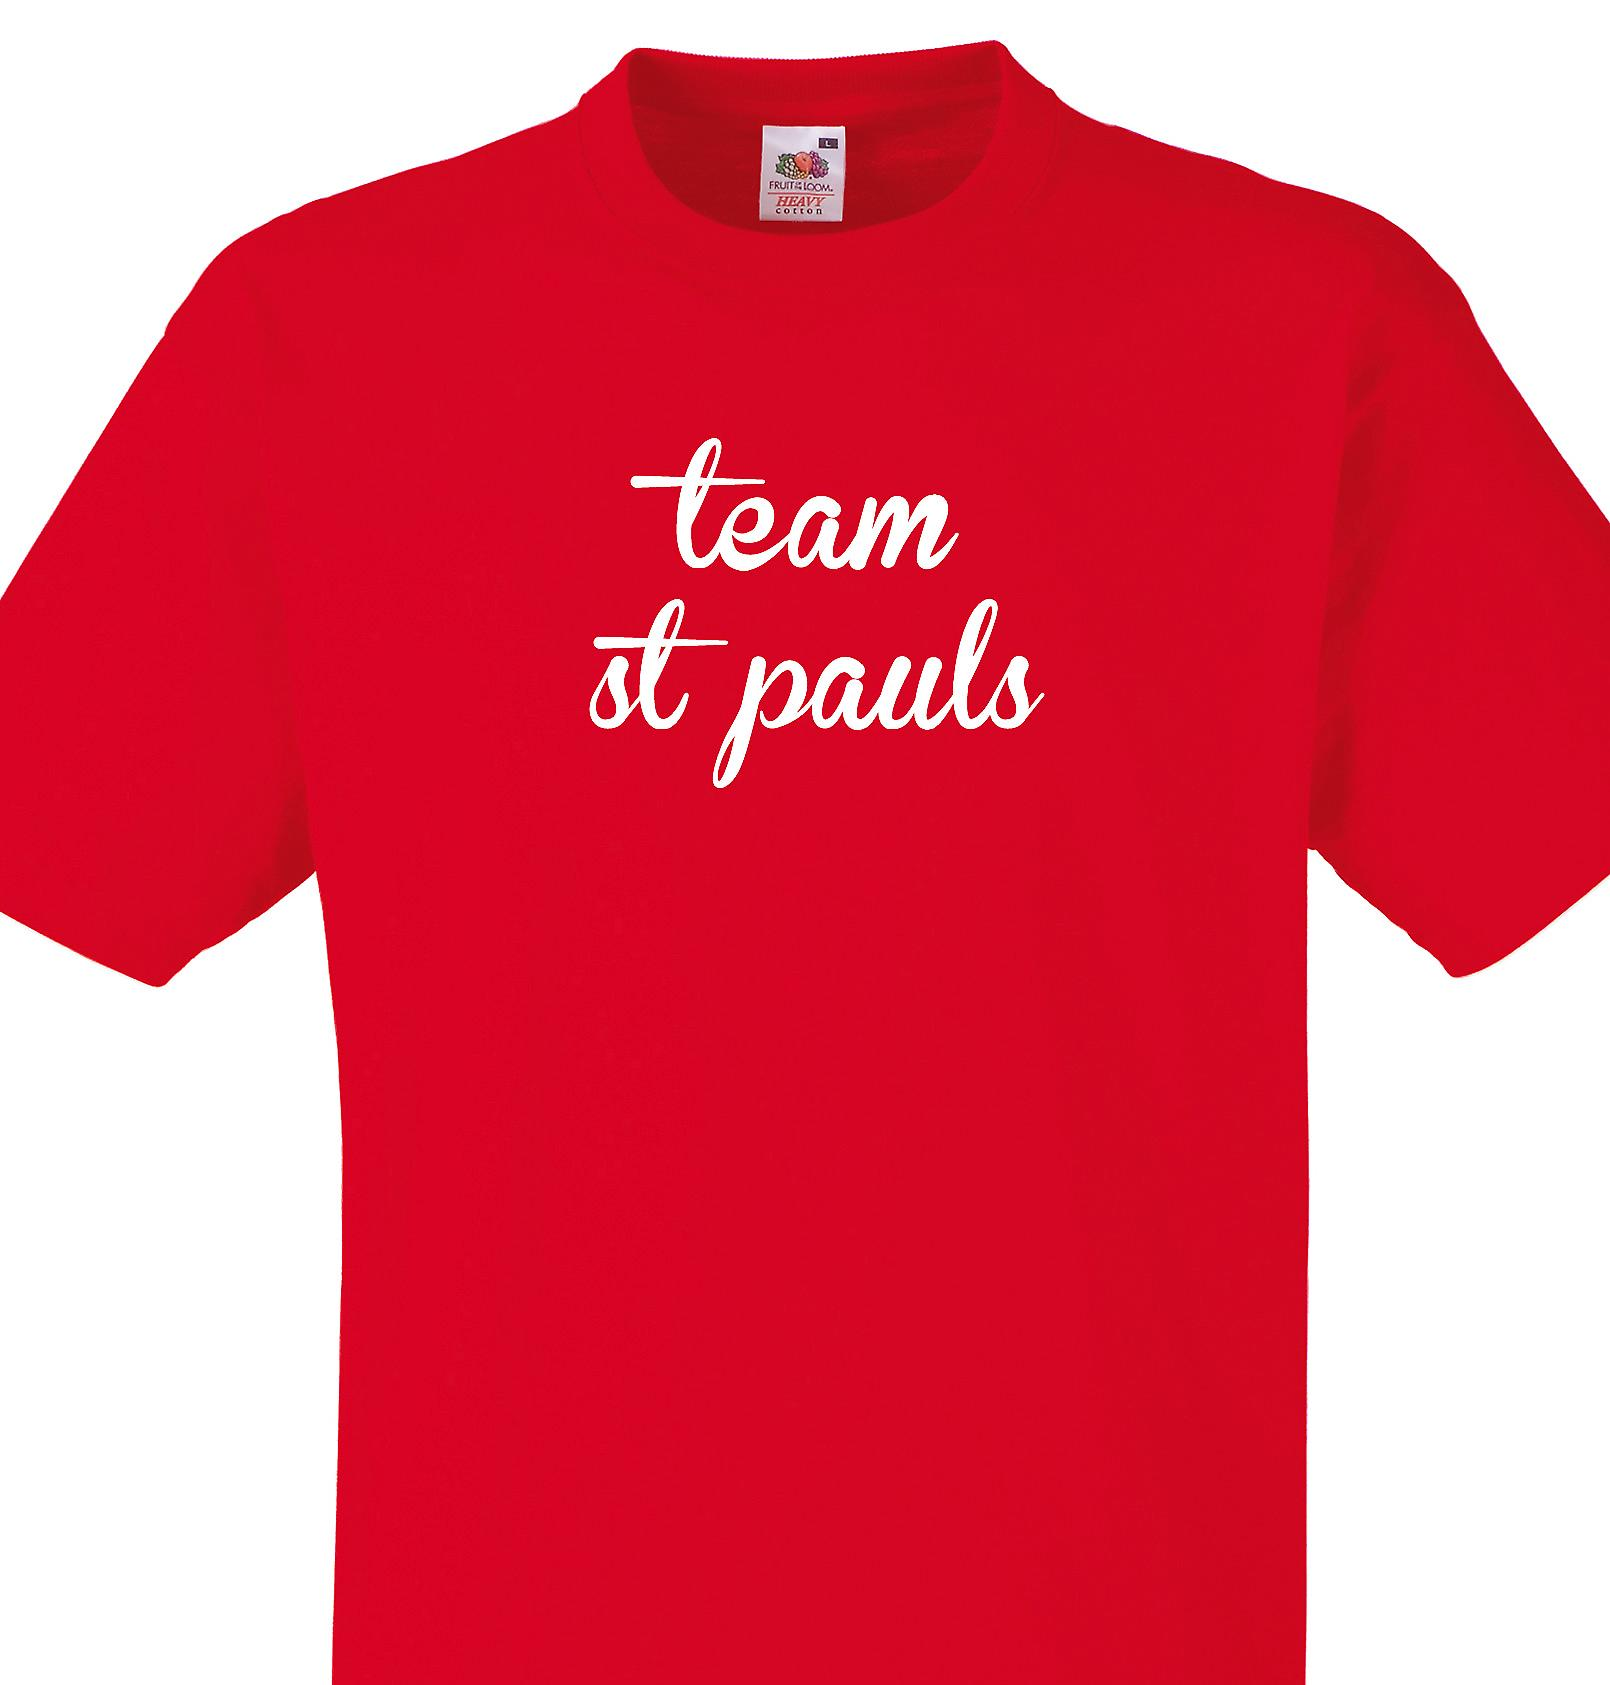 Team St pauls Red T shirt